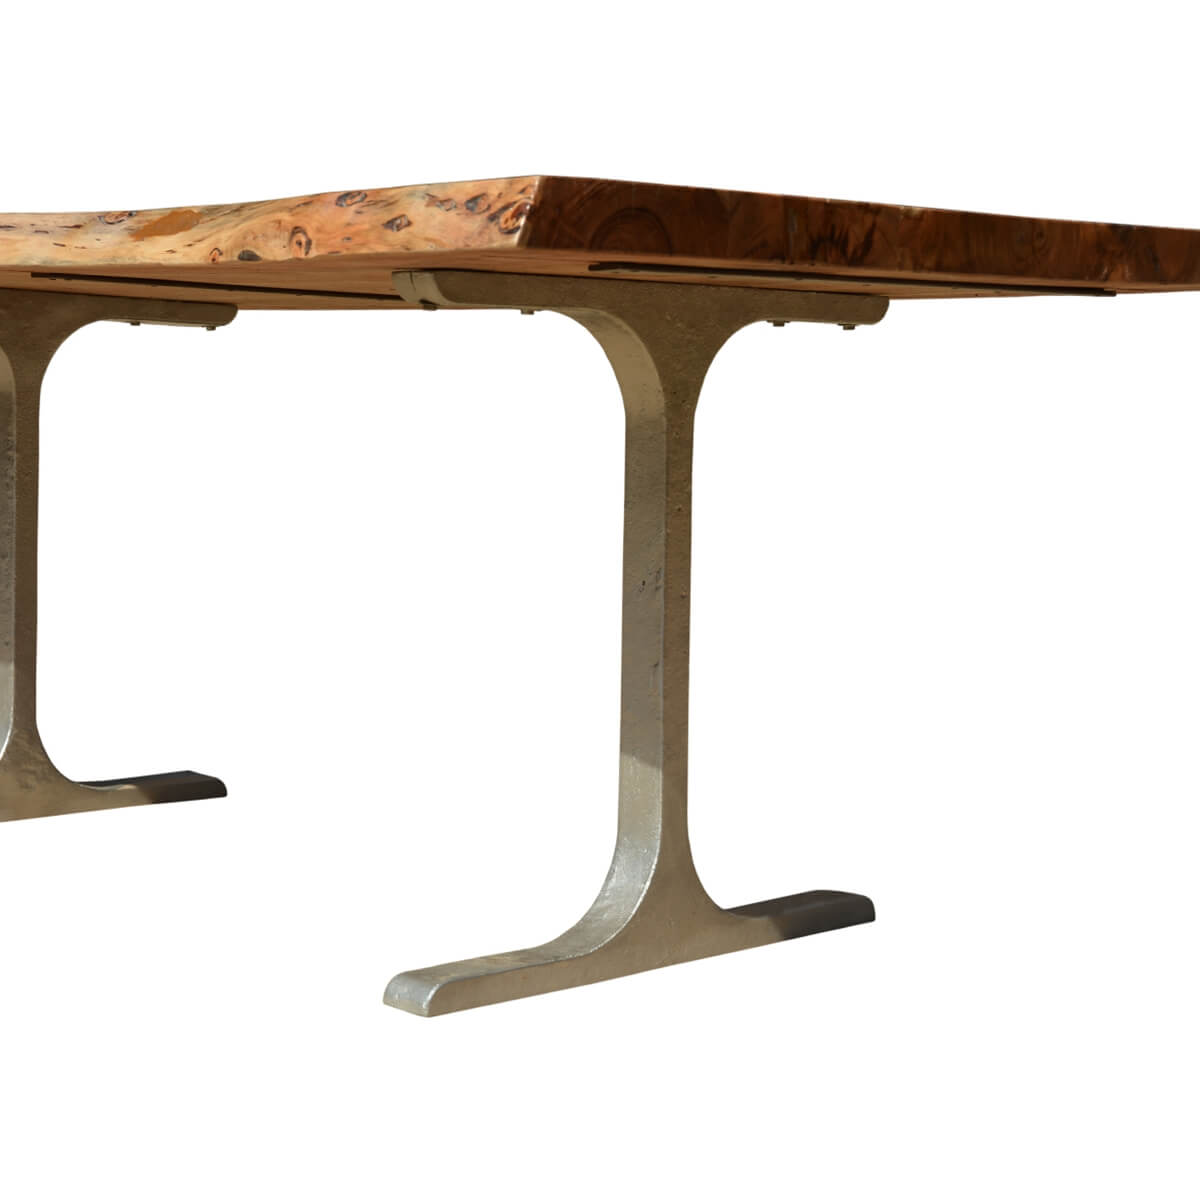 Solid Wood amp Iron Base Santa Fe Live Edge Dining Table : 69984 from www.sierralivingconcepts.com size 1200 x 1200 jpeg 204kB